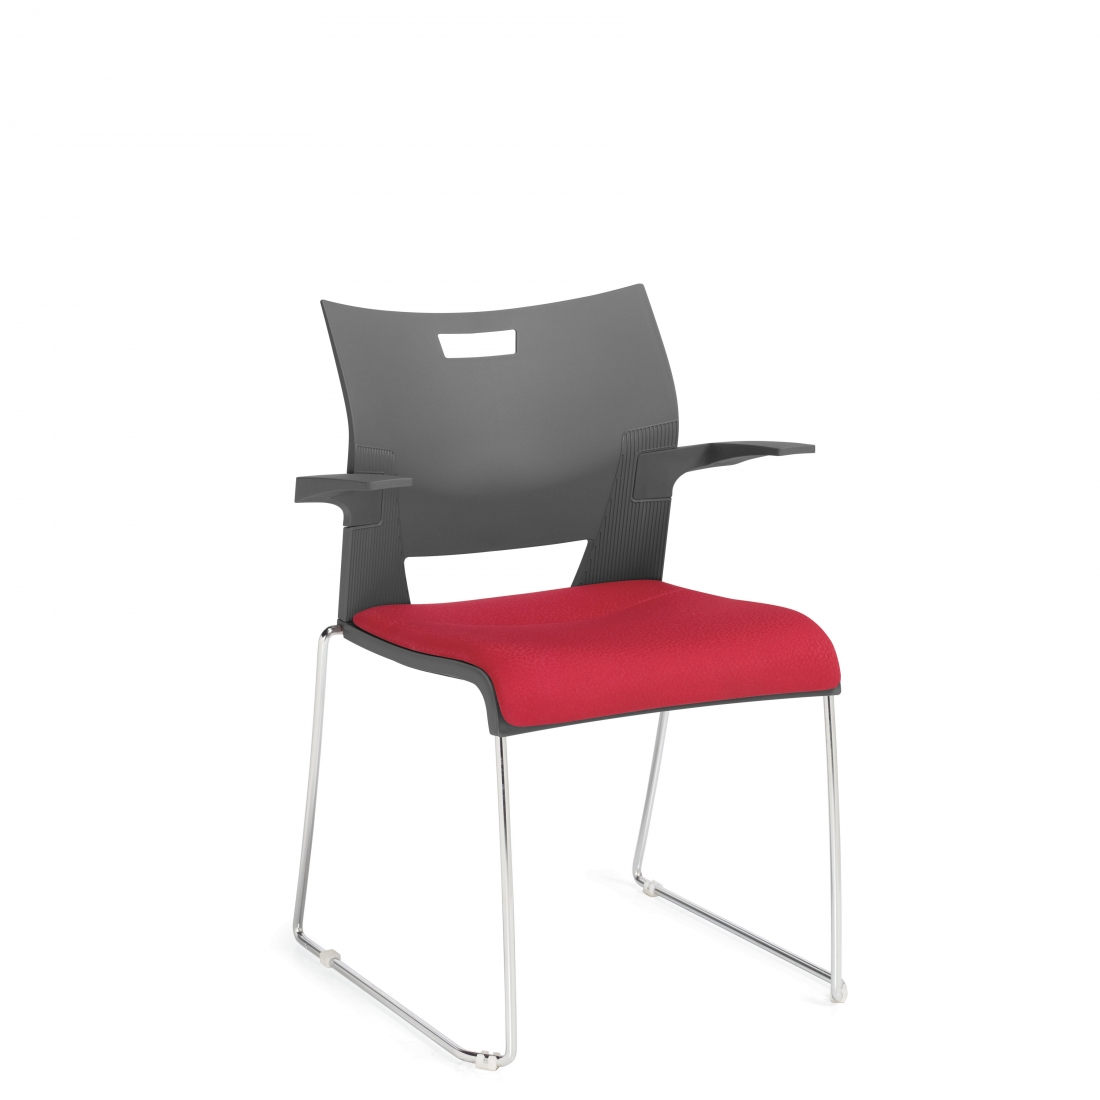 Duet Arm Chair with Padded Seat.jpg